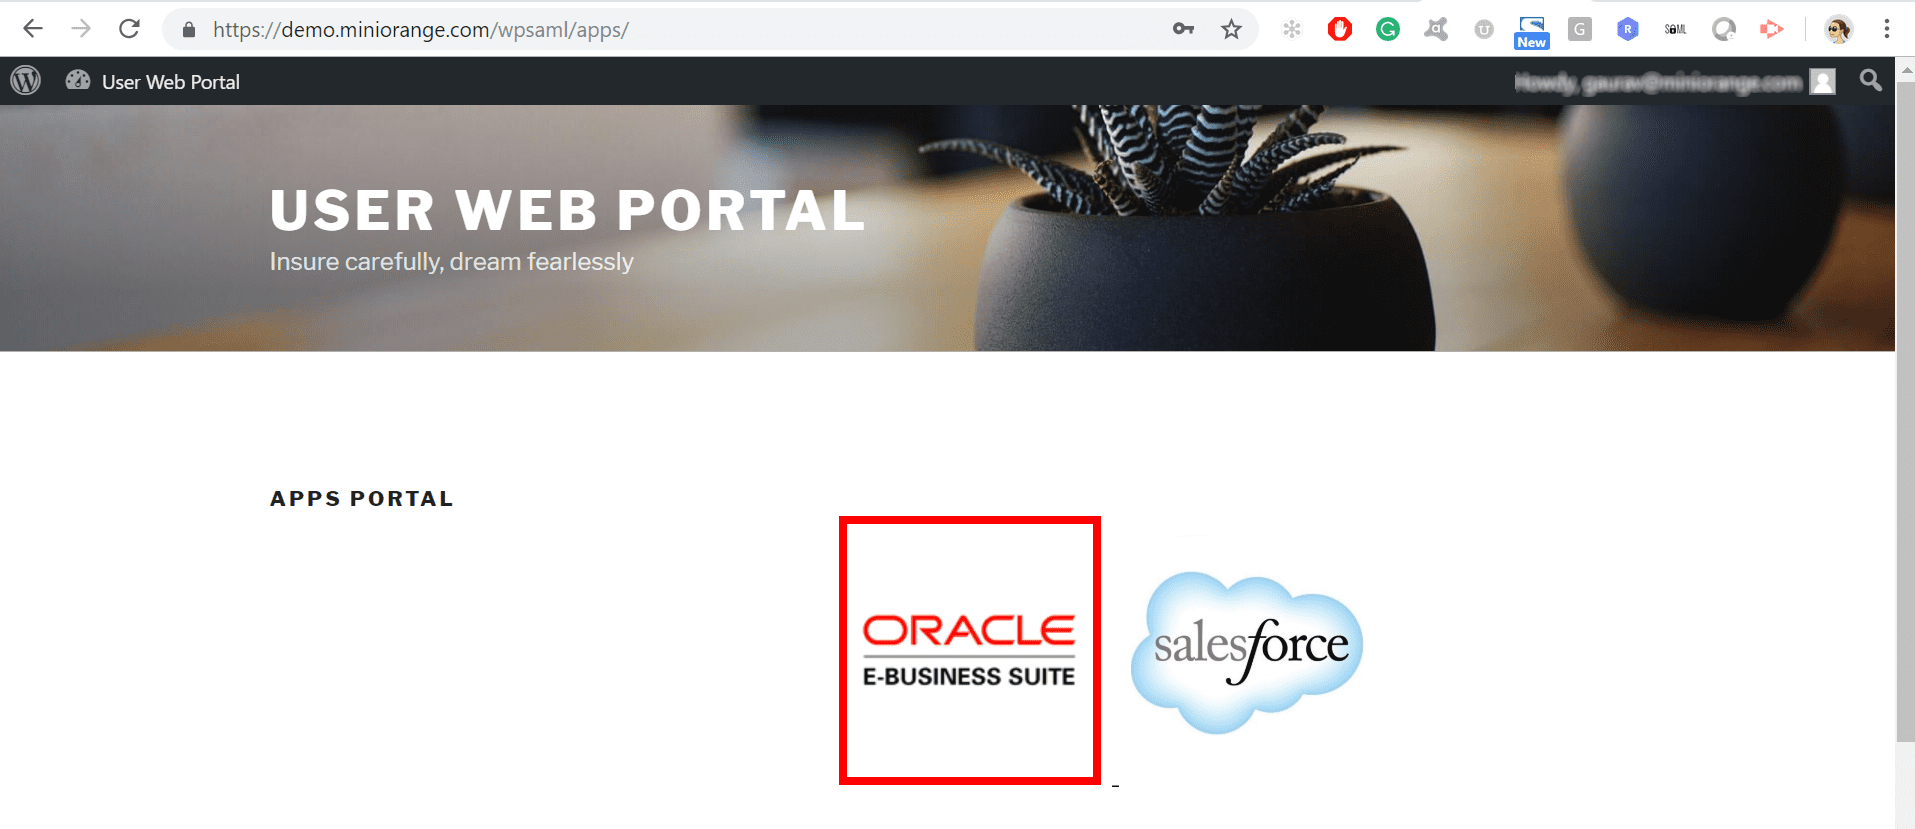 single-sign-on-extension-secure-sso-oracle-ebs-login-page-oracle icon